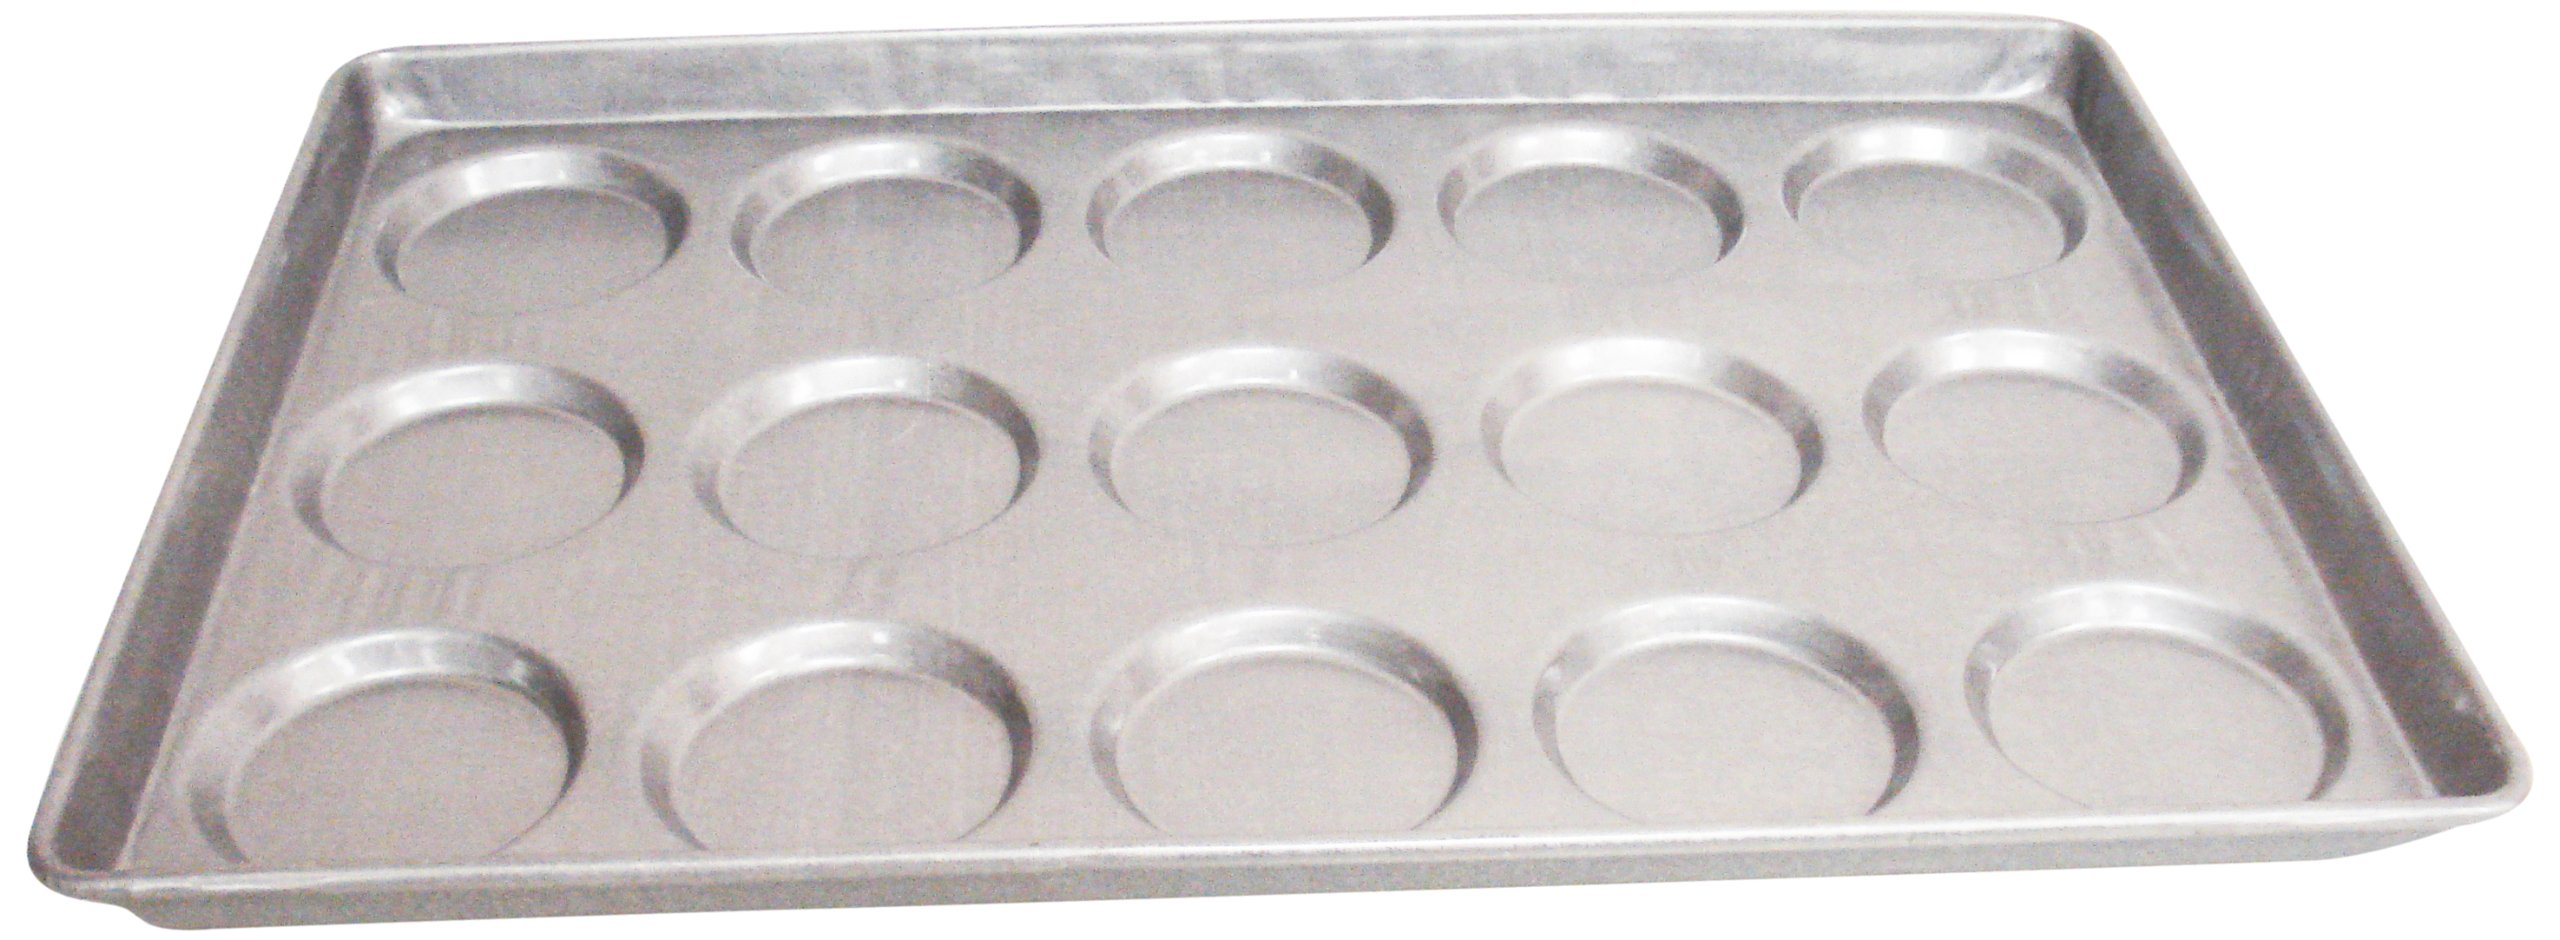 Magna Industries 14630 18-Gauge Aluminized Steel Hamburger/Muffin Top Pan, 4-1/8'' Diameter, 3 x 5 Cups Layout (Pack of 6) by Magna Industries